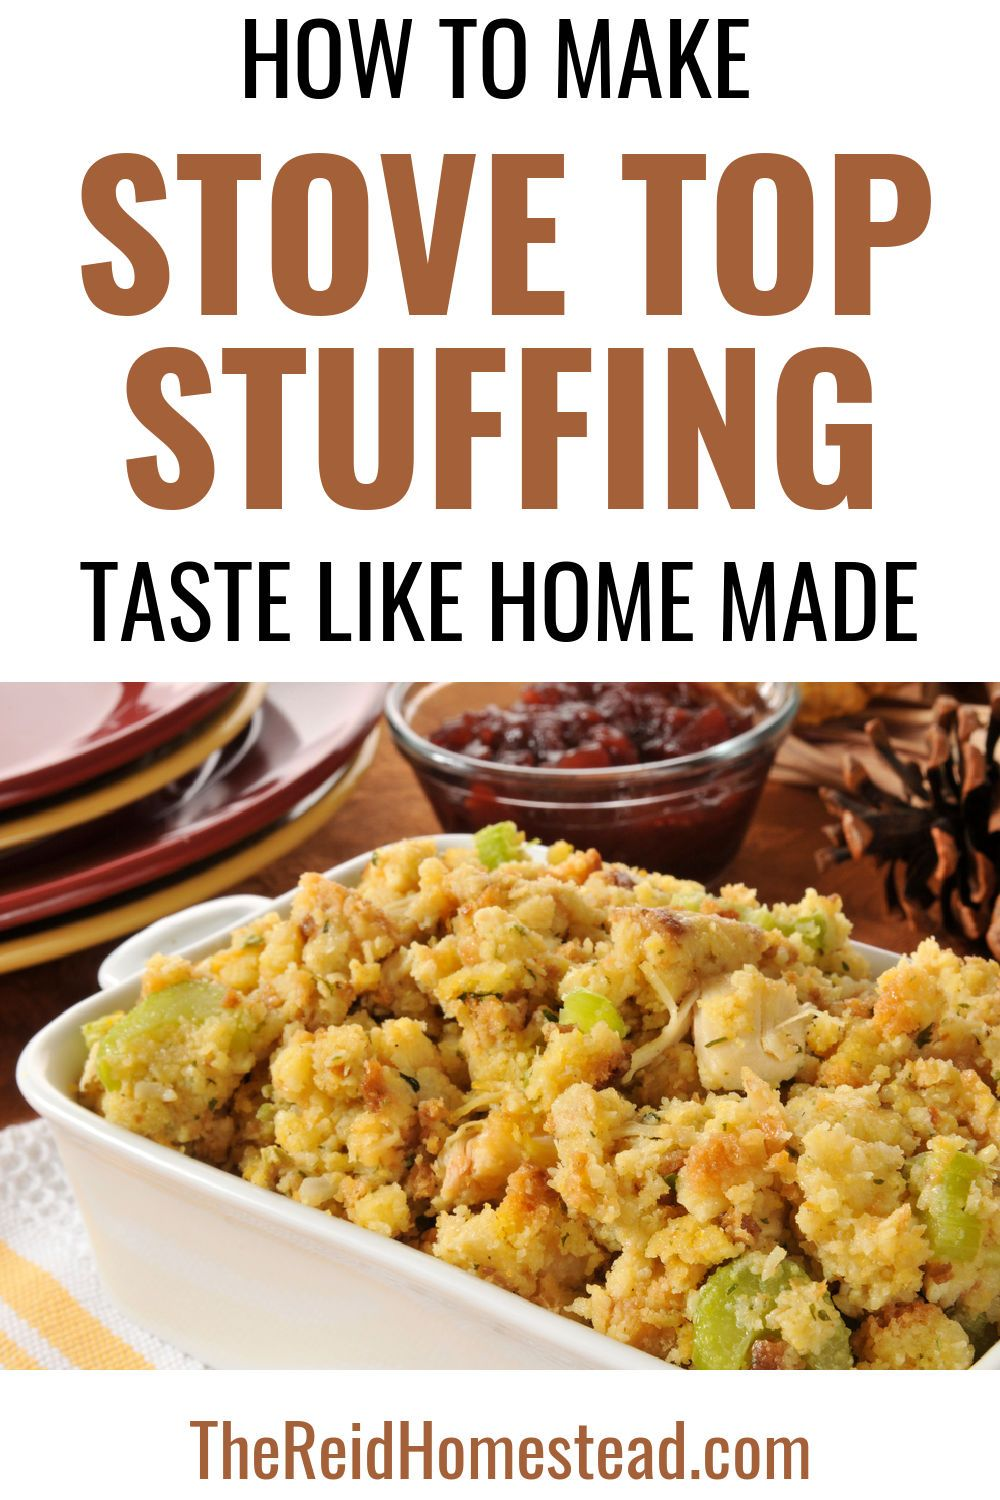 How to Make Stove Top Stuffing Taste Like Home Mad